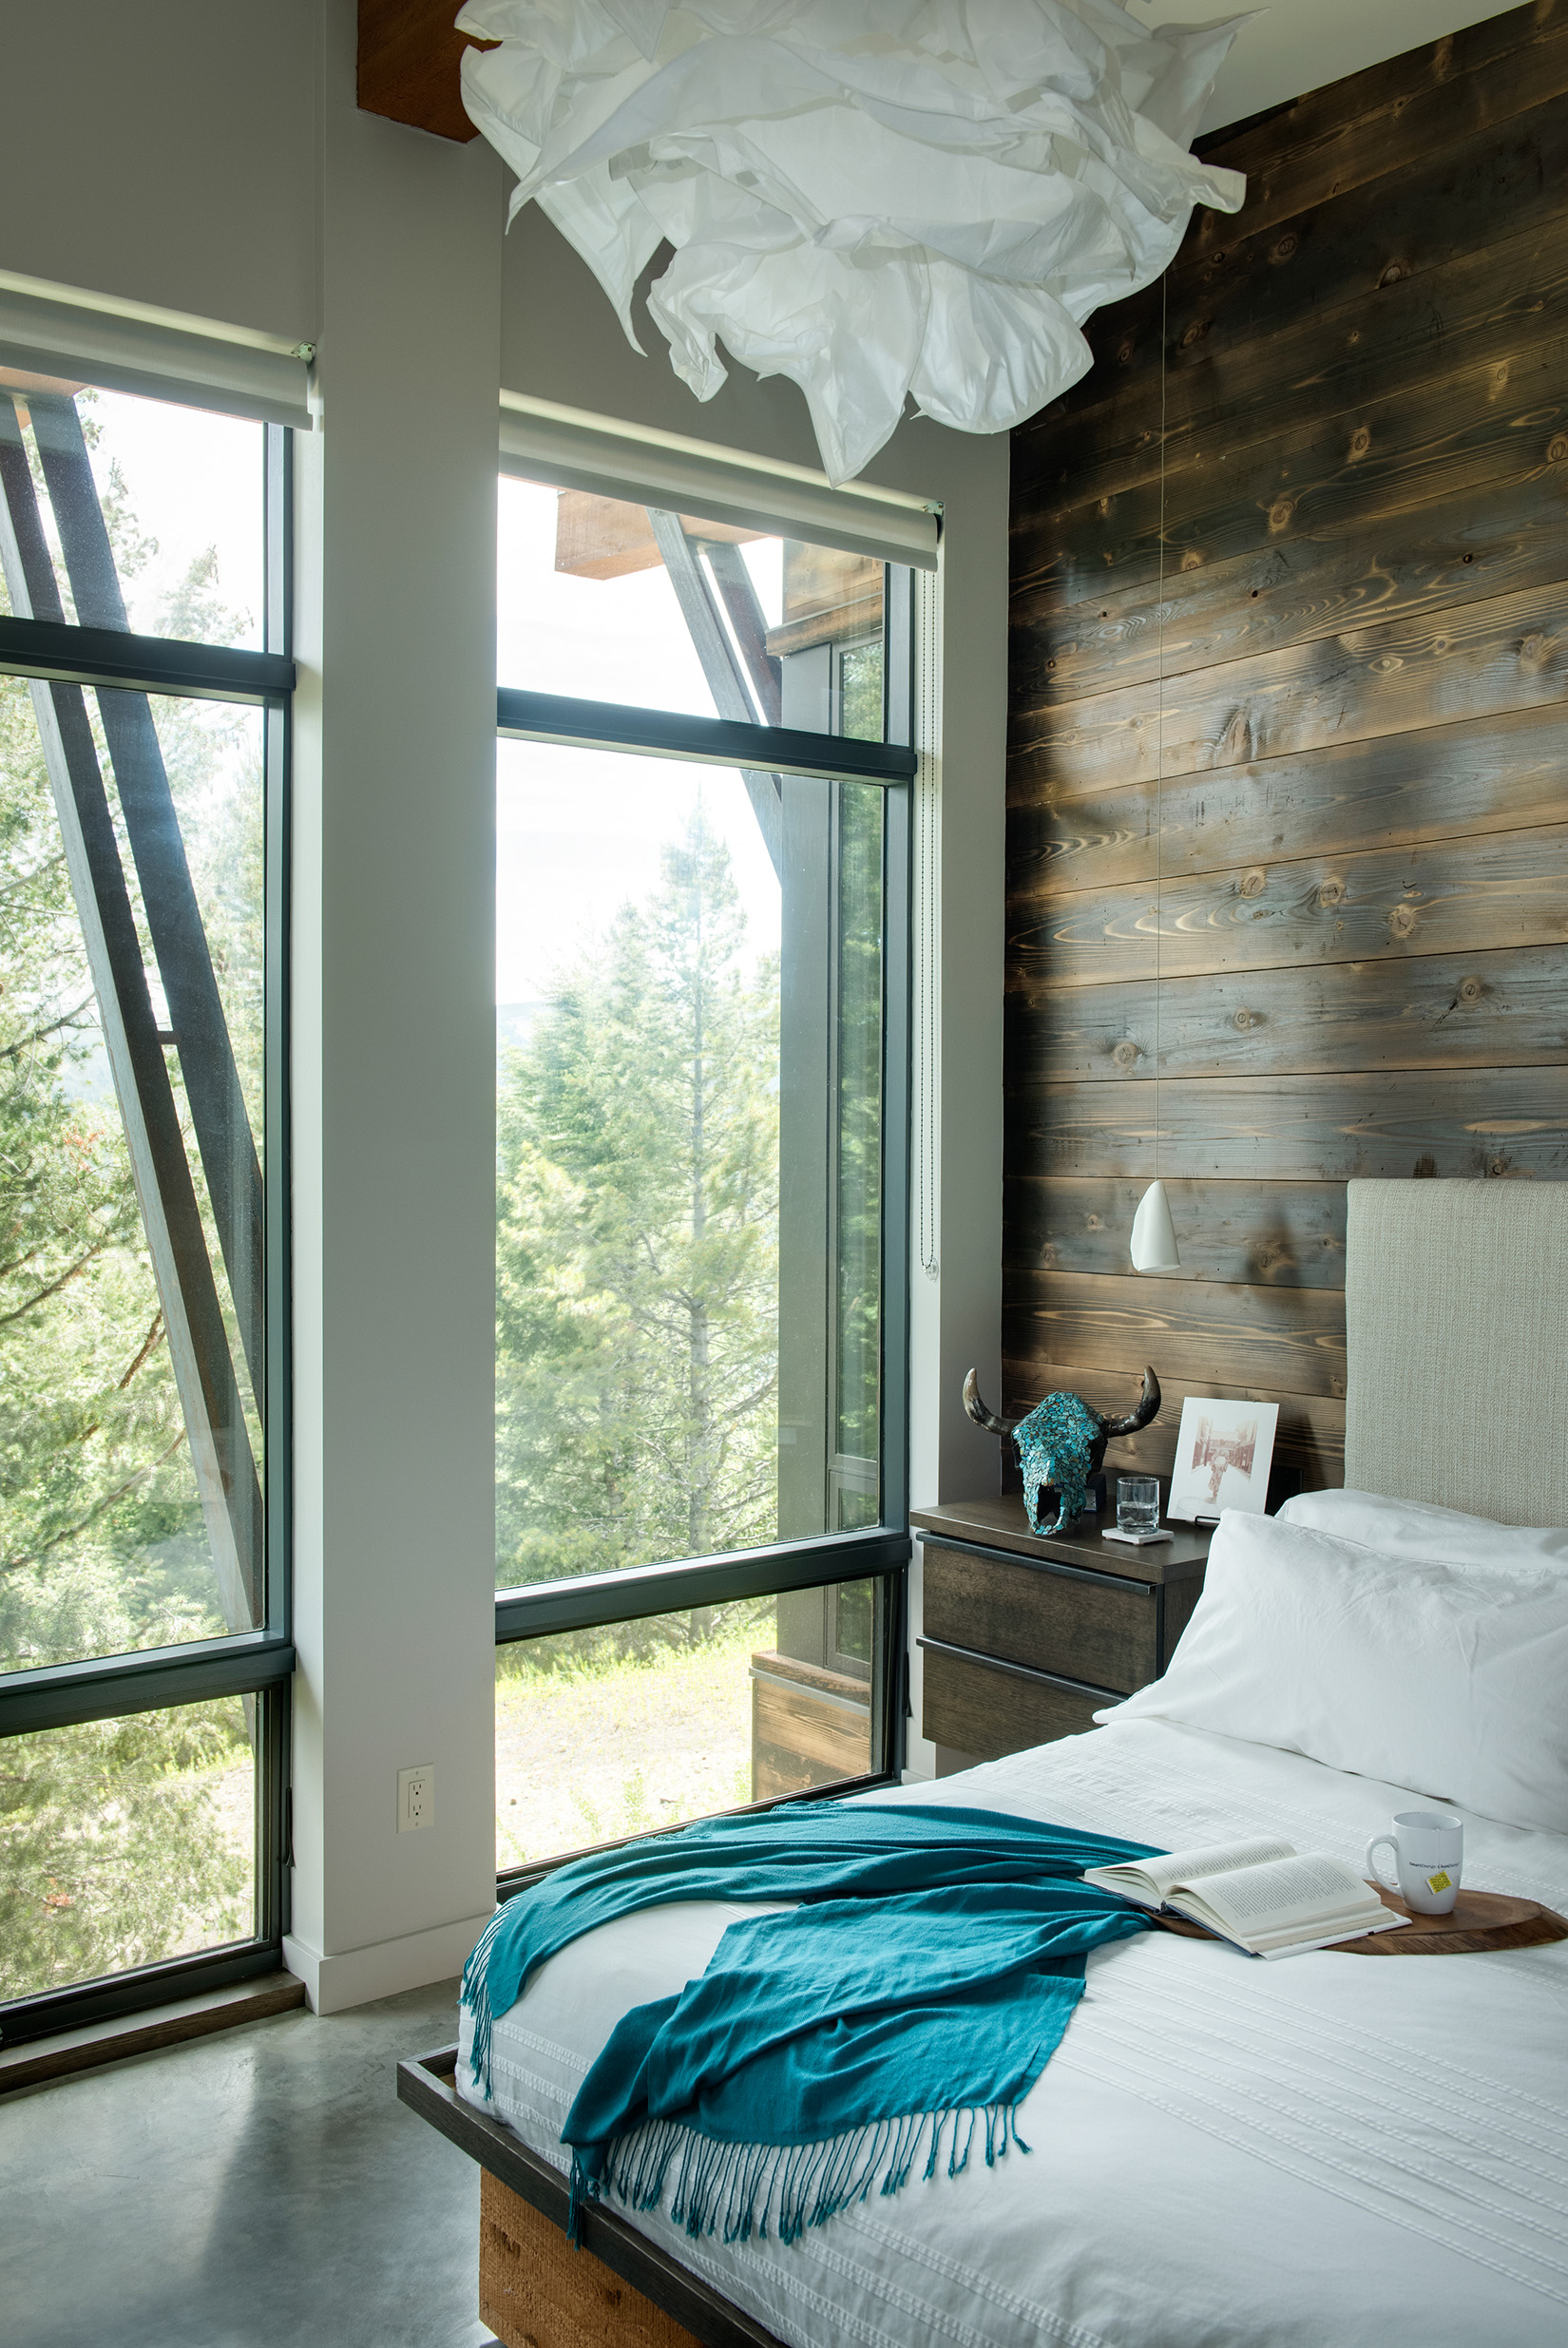 The walls and windows are spectacular in the master bedroom.